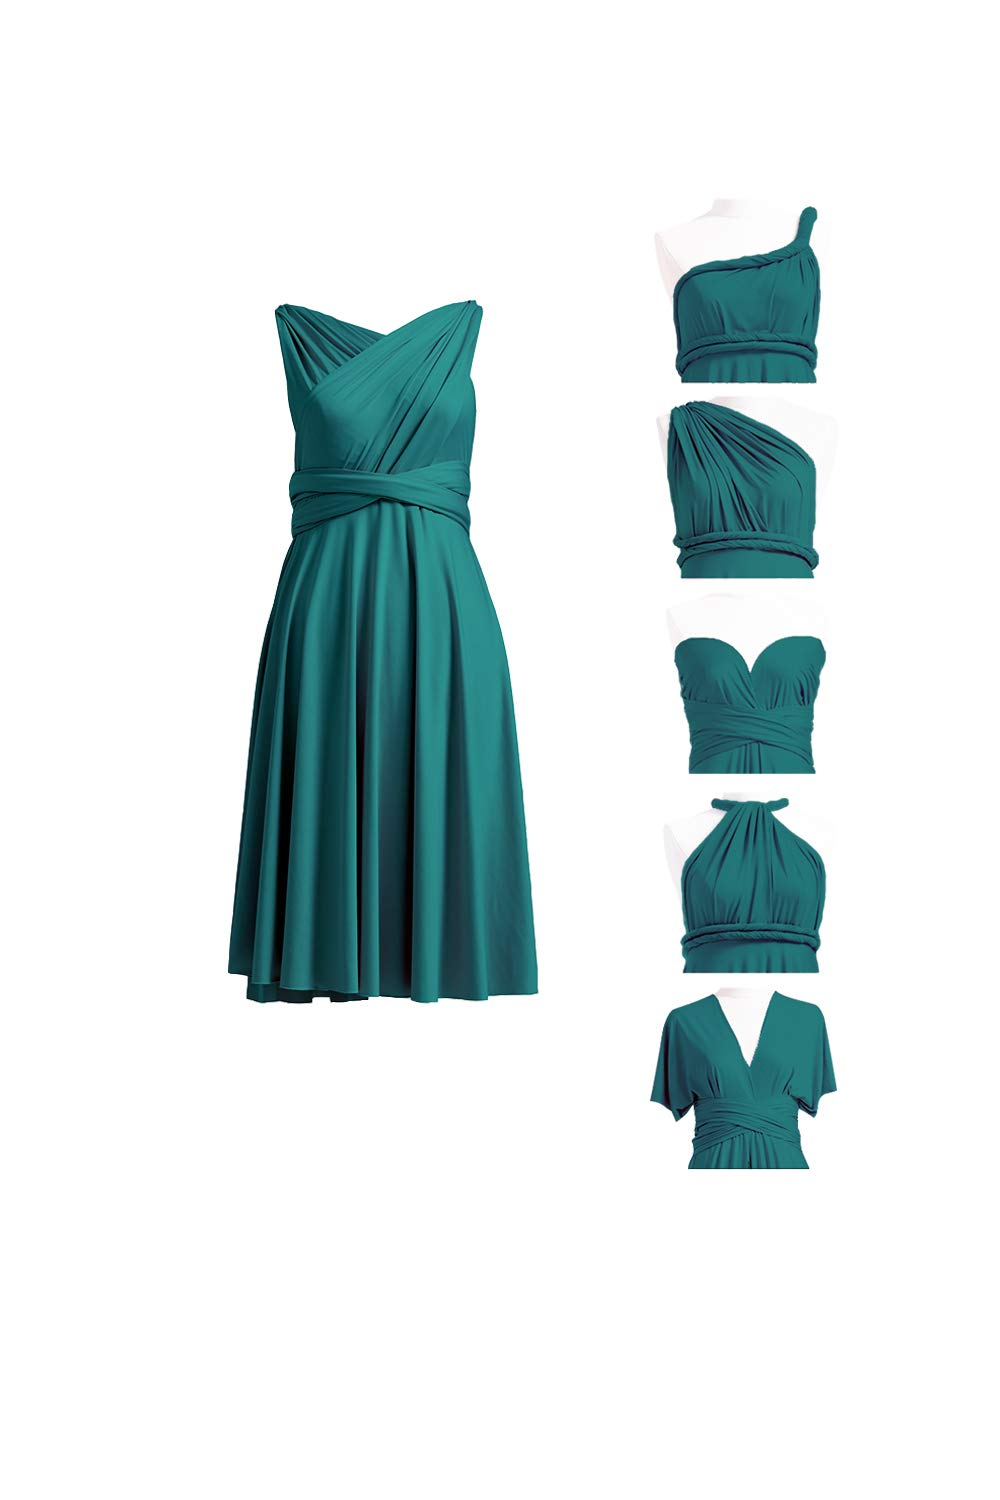 Available at Amazon: 72STYLES Women's Convertible Dress Short Infinity Dress Transformer Multiway Wrap Dress for Bridesmaid